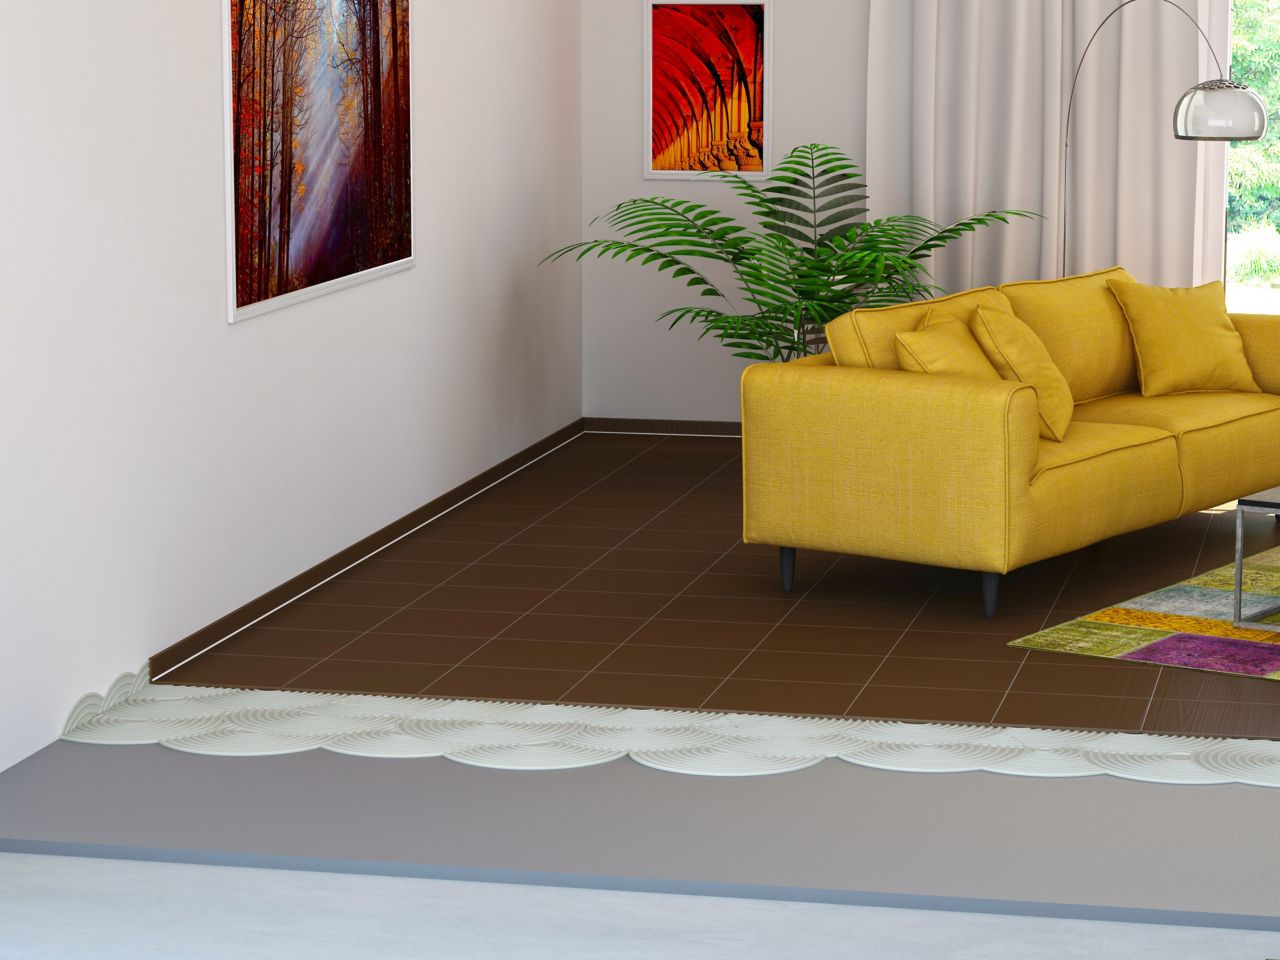 Illustration of tile setting adhesives in living room with yellow sofa